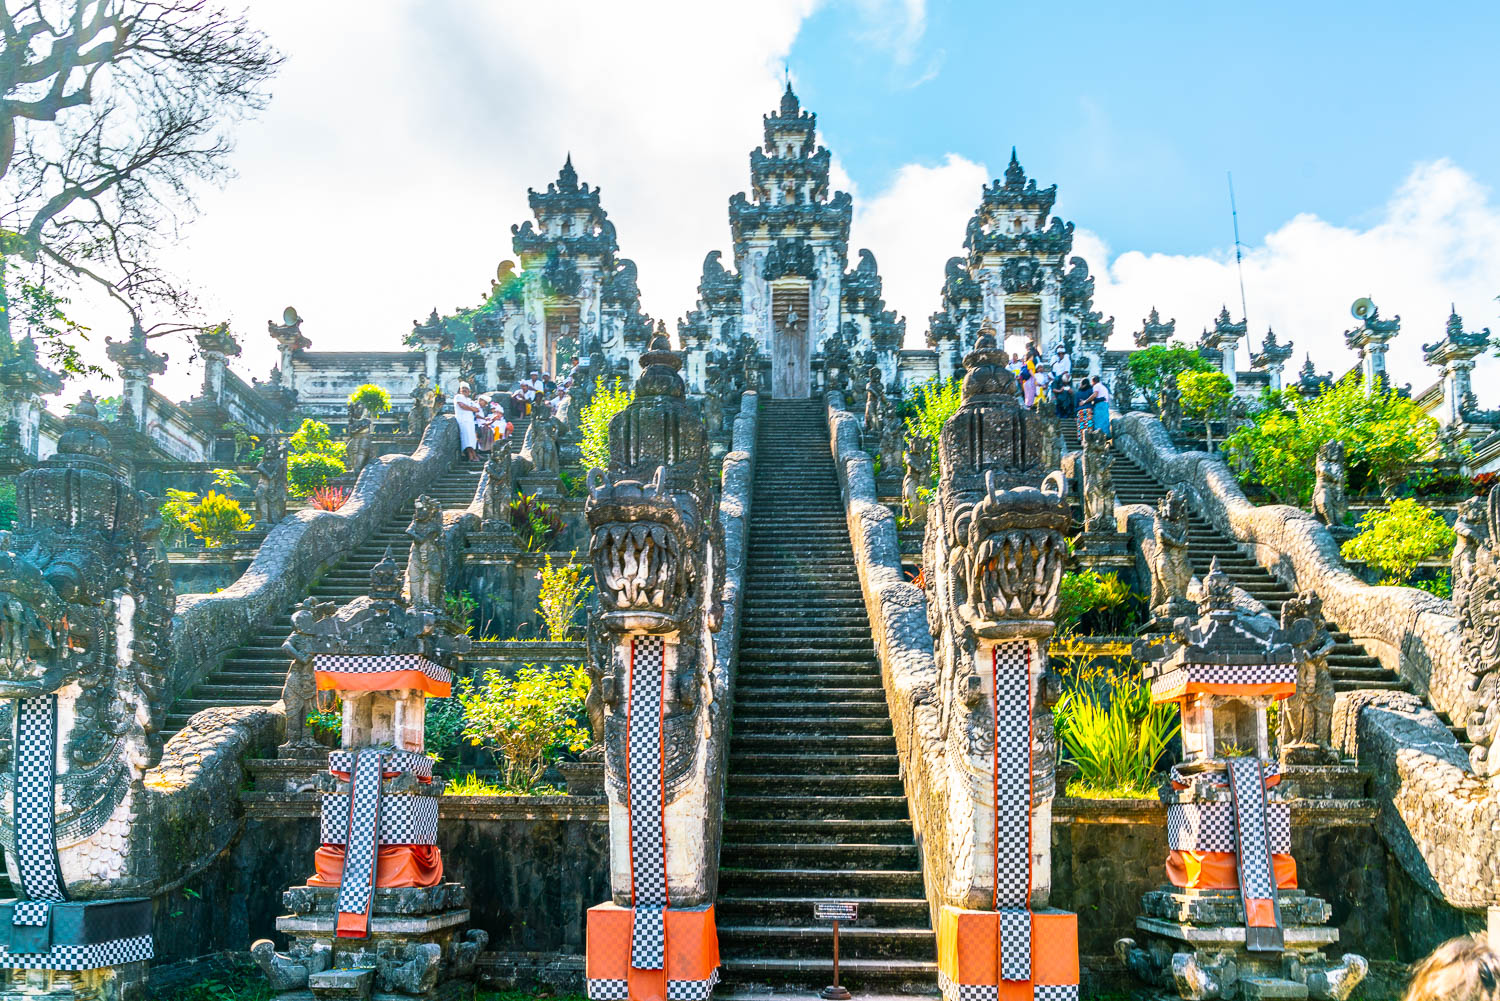 Stairs to the adjacent temples of Pura Lempuyang.